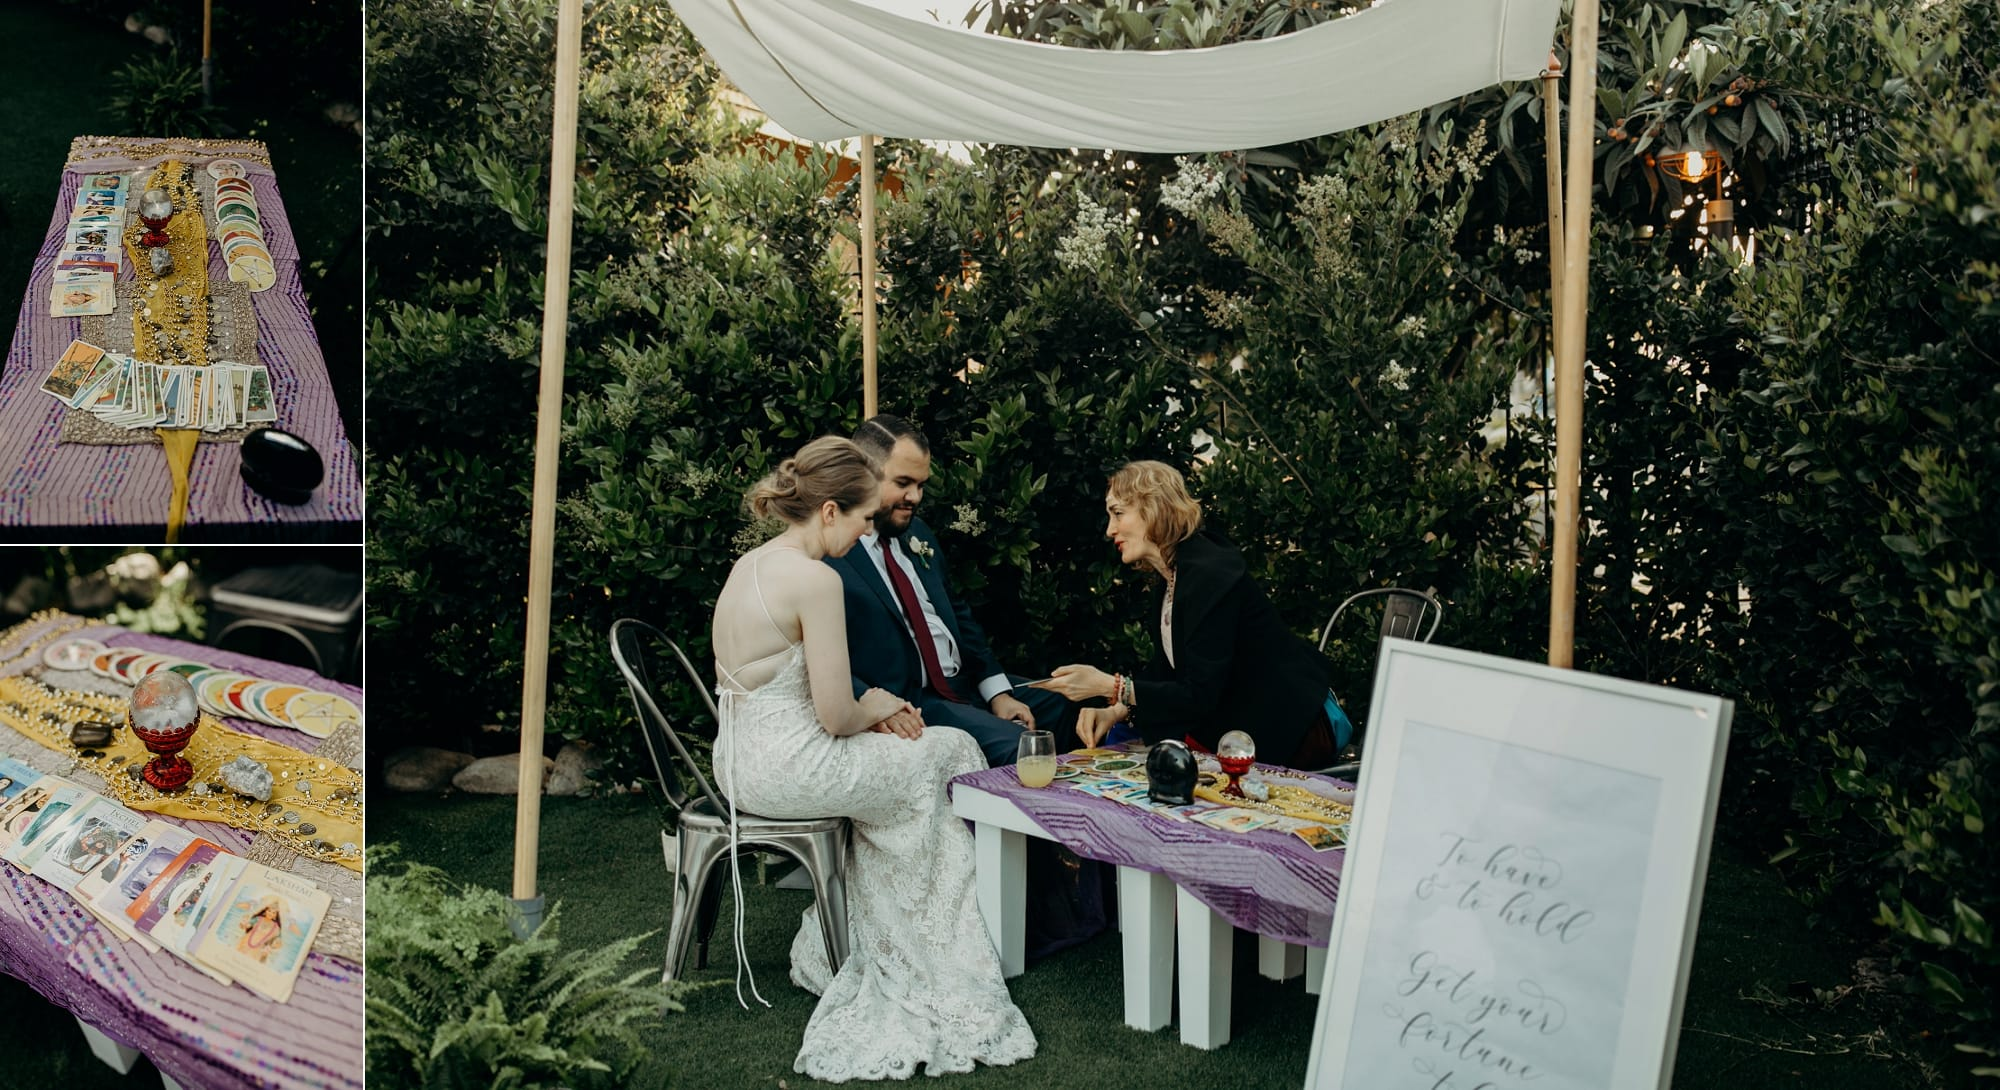 tarot card reader at a wedding during cocktail hour